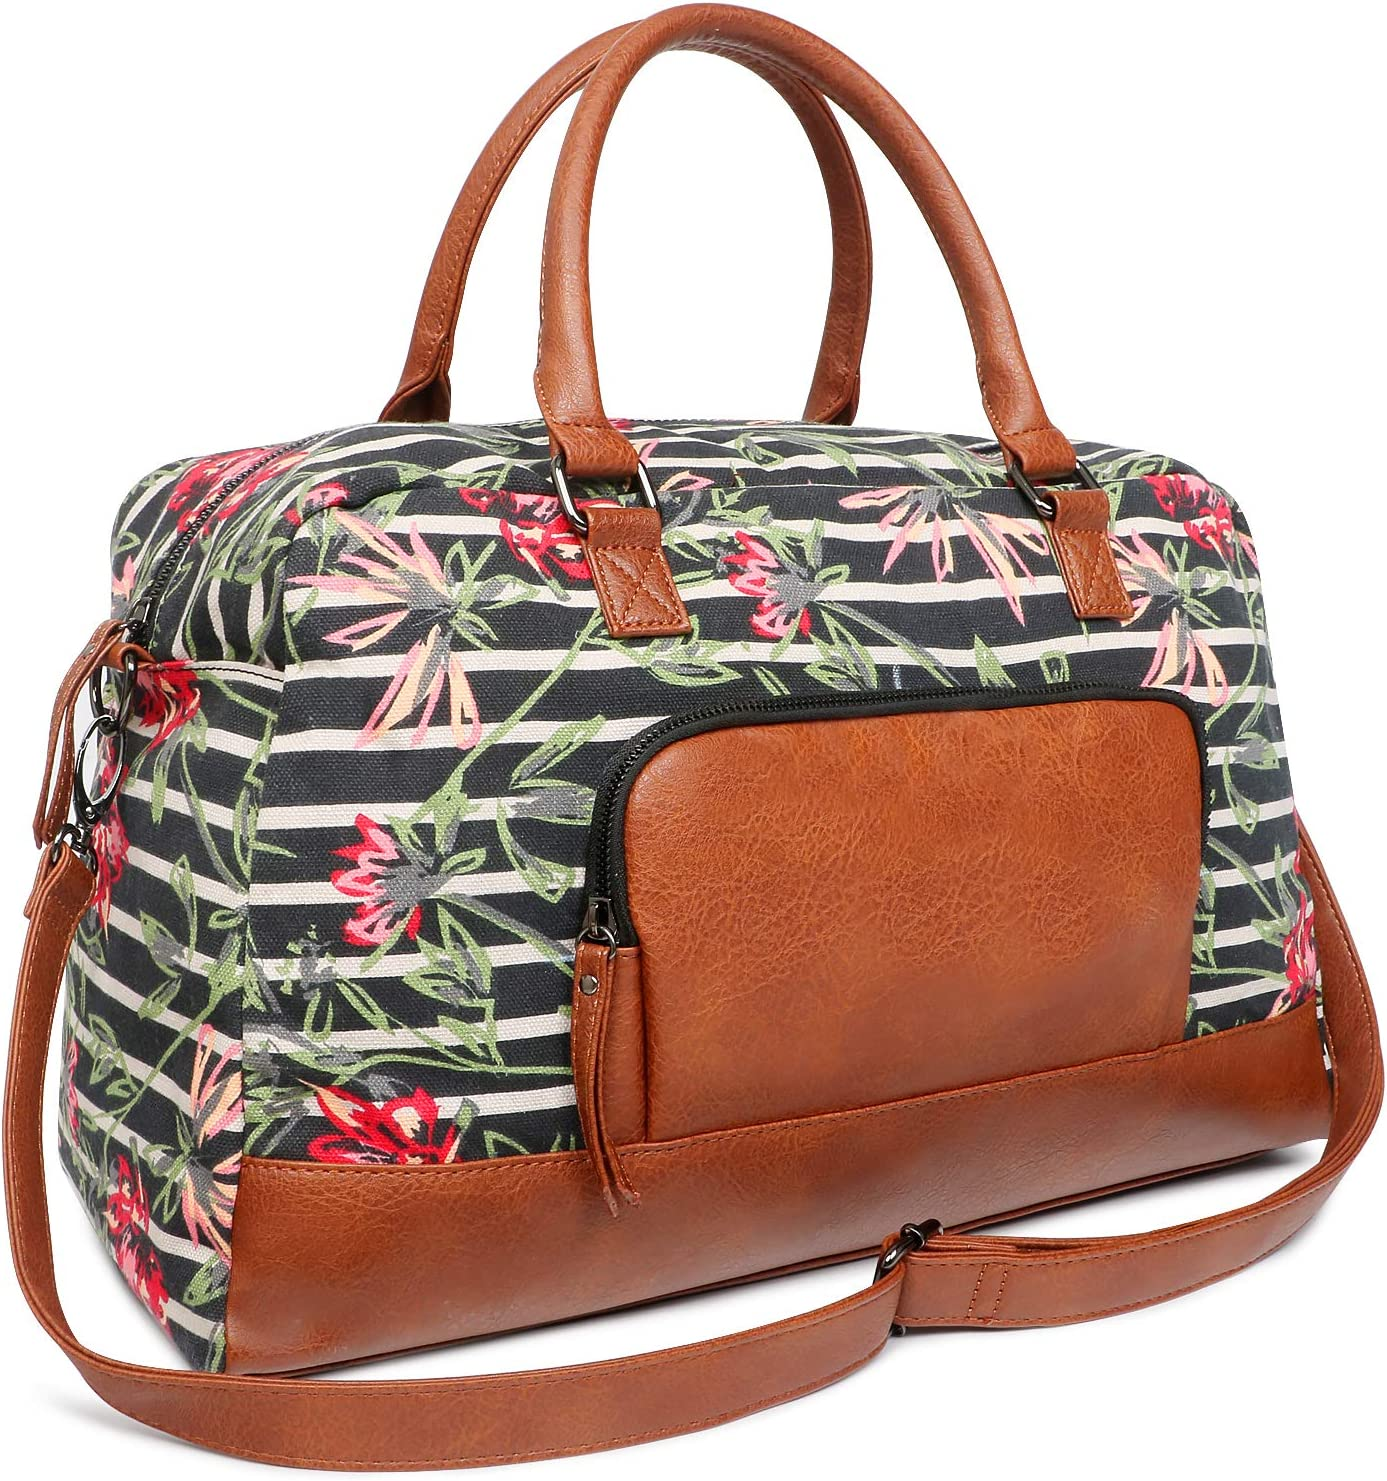 FITMYFAVO Canvas Weekender Tote Bag for Women Floral Stripe Overnight Tote Duffel Bag with Vegan Leather Handle